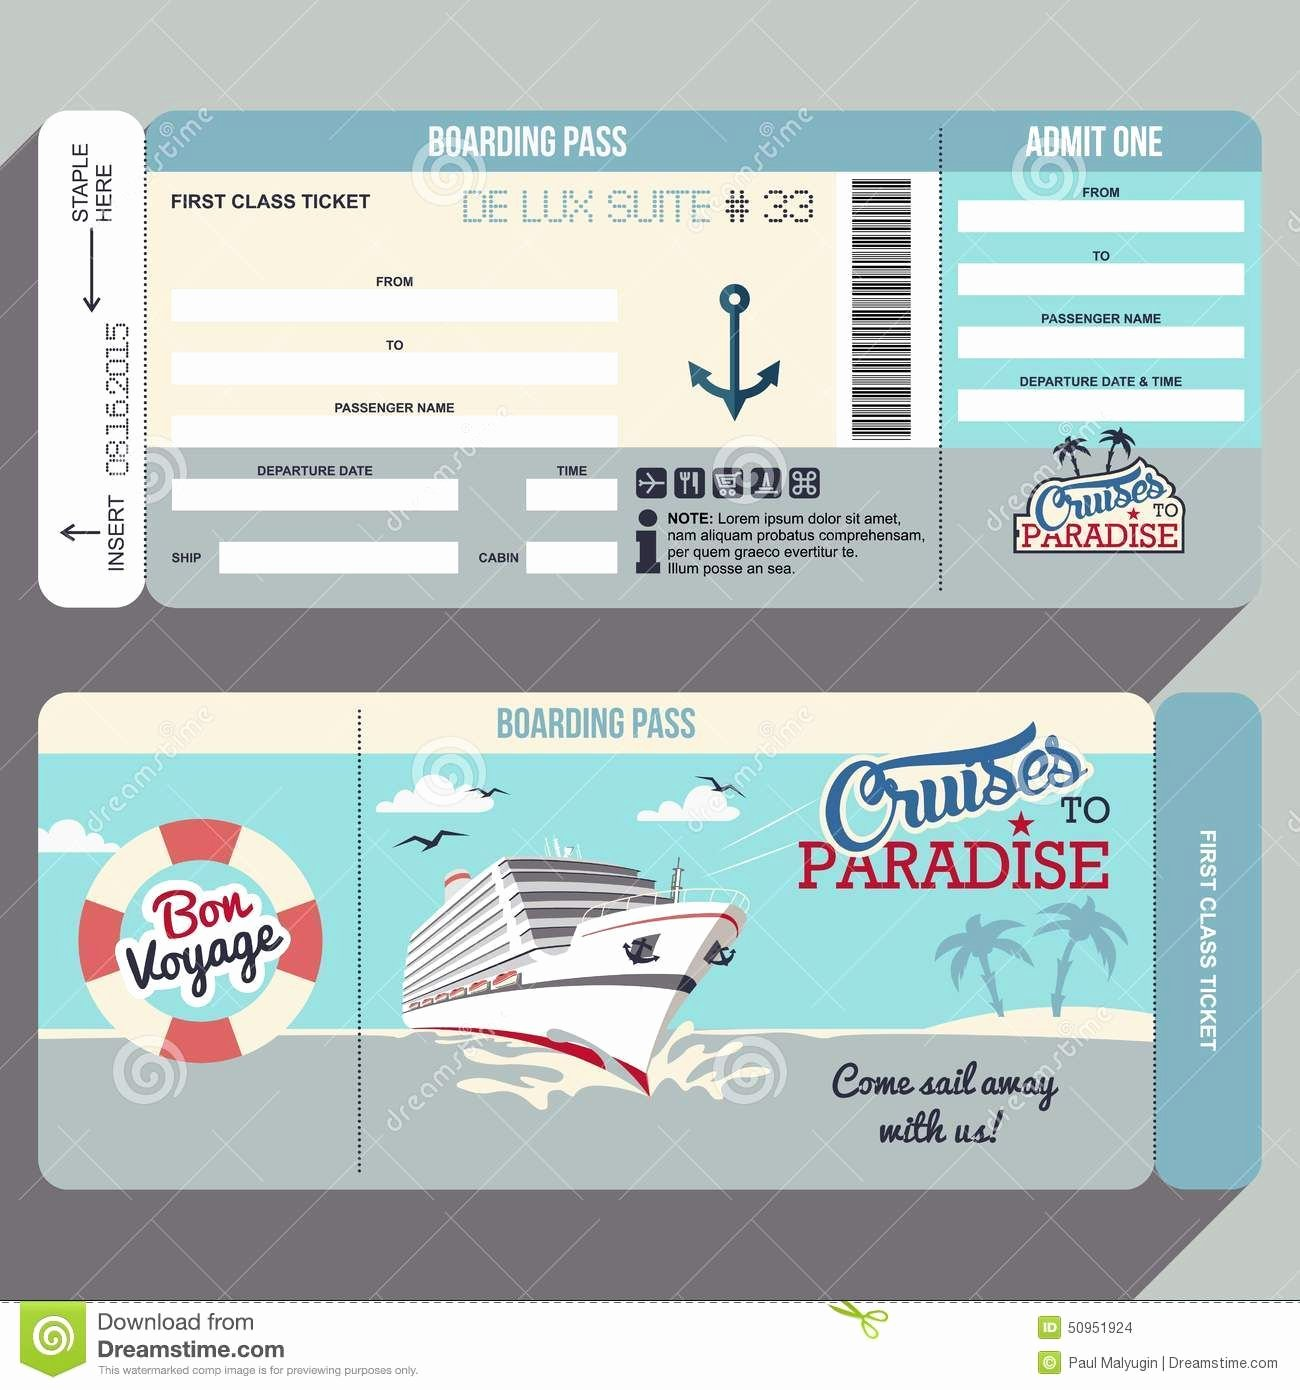 Free Boarding Pass Template Inspirational Cruises to Paradise Boarding Pass Design